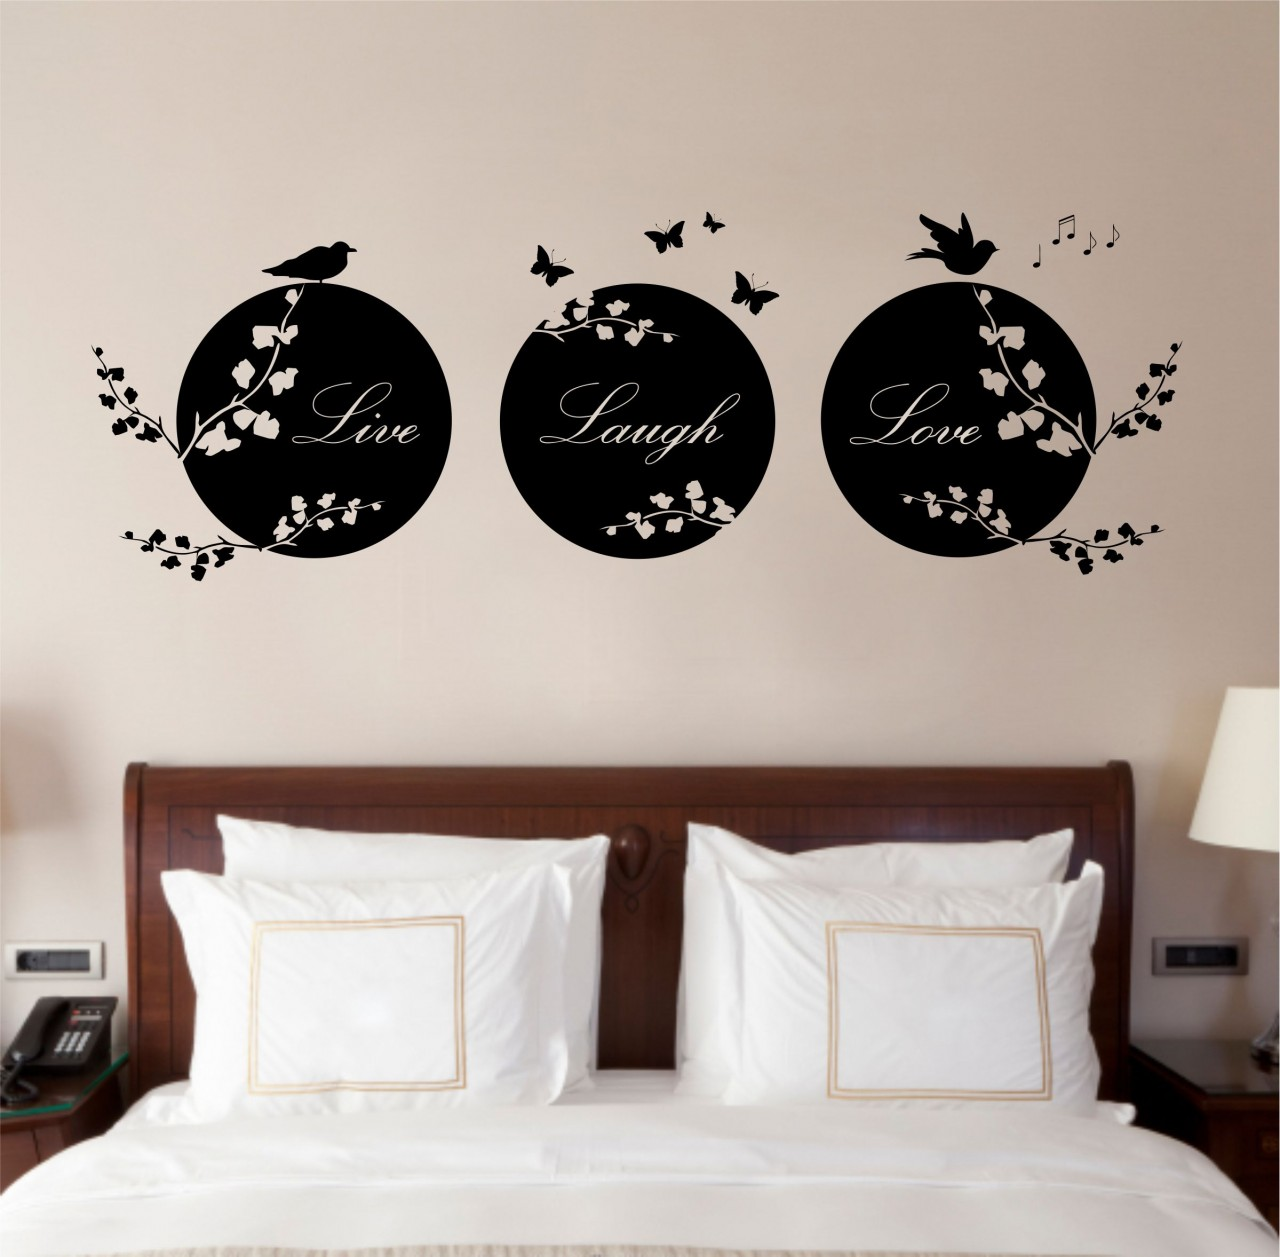 Vinyl wall art vinyl wall art craft room vinyl wall for Bedroom wall decals